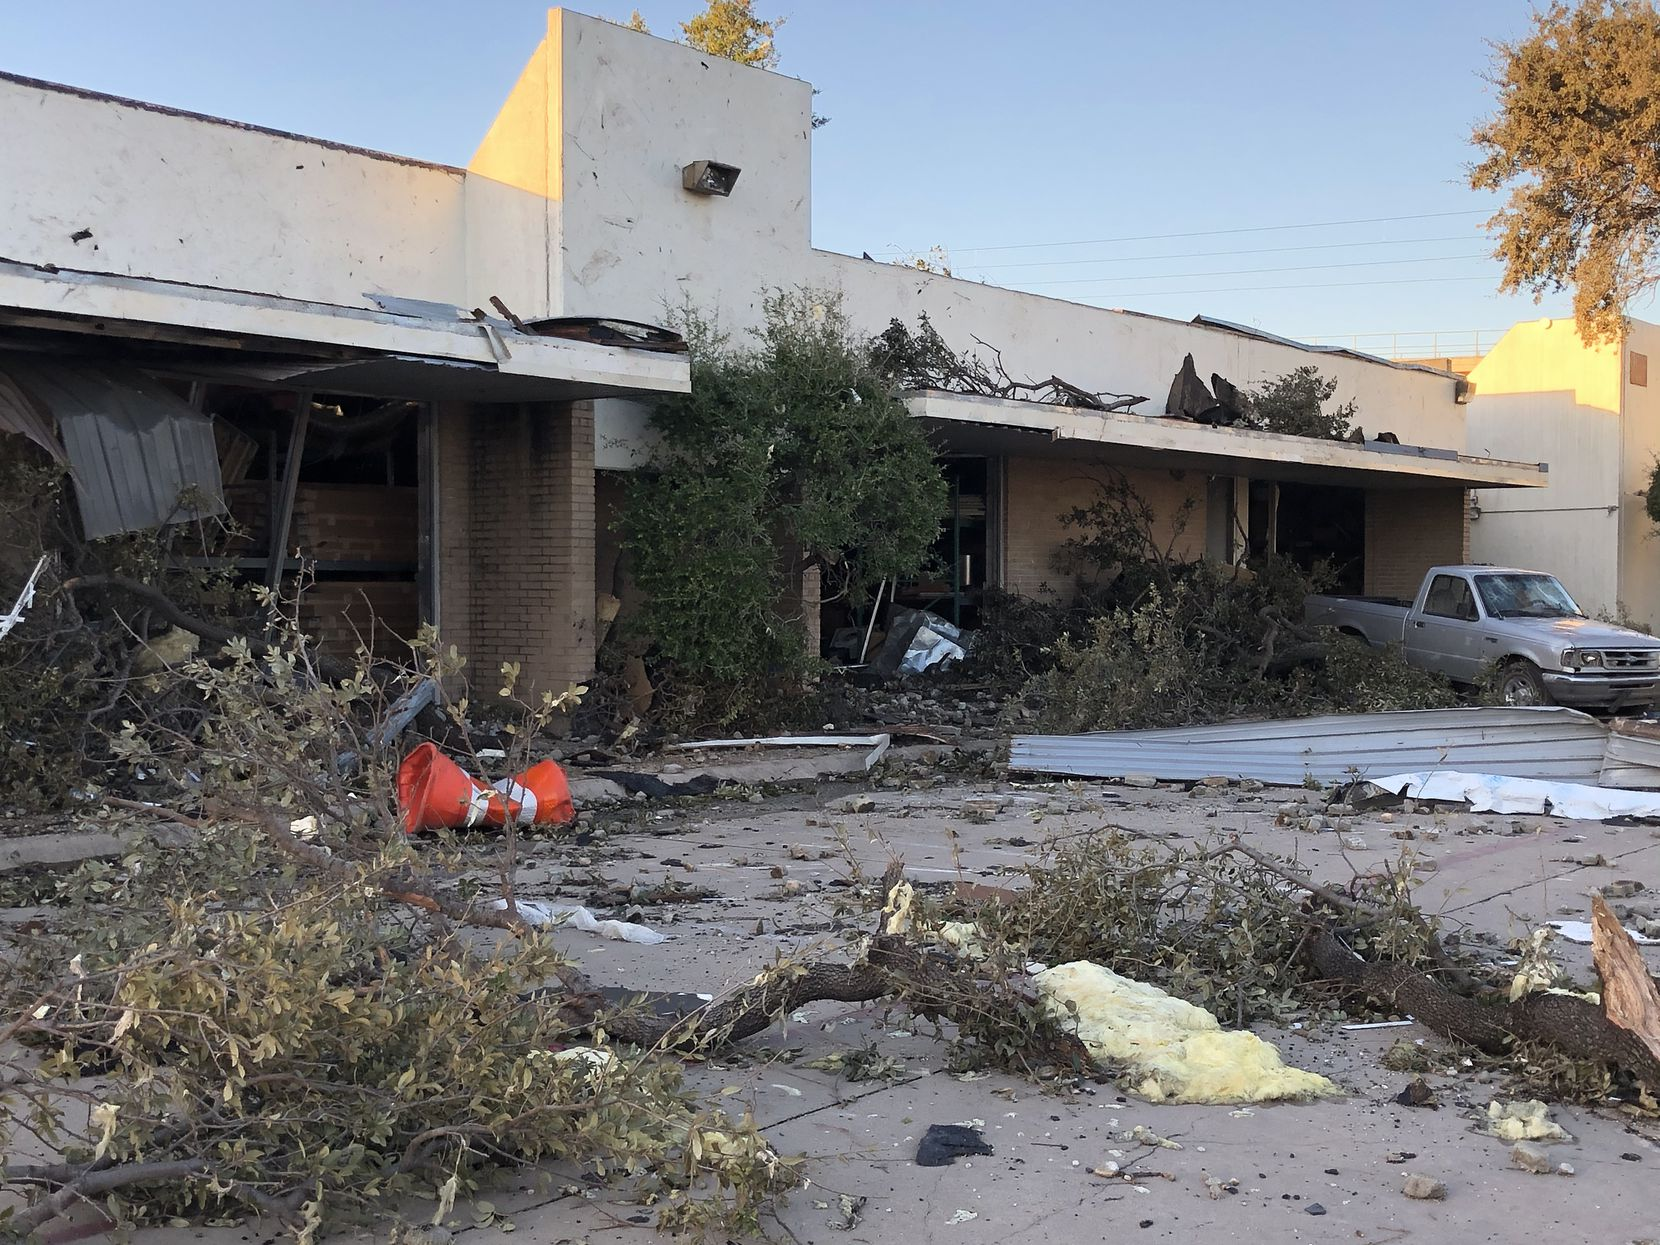 October's storm severely damaged the Walnut Plaza West center at the southeast corner of Walnut Hill Lane and Denton Drive.